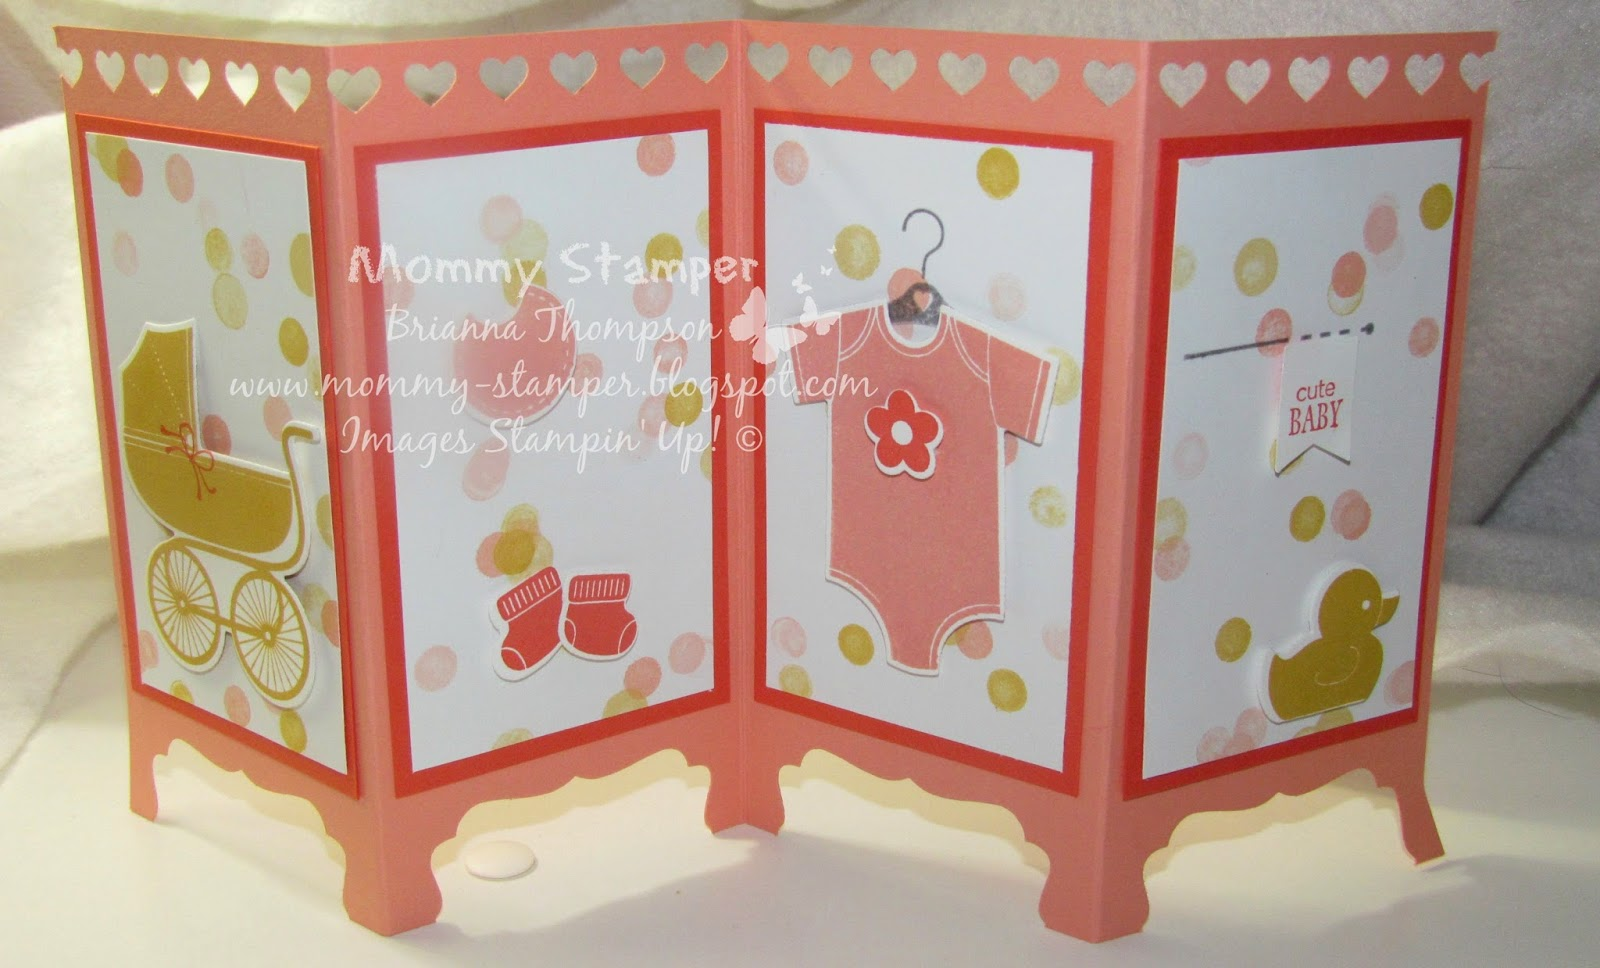 Mommy Stamper  Baby Room Divider Card. Home Decor Catalogs. Decorative File Storage Boxes. Living Room Daybed. Decorative Candles. Home Decor Fabric Online. Baby Shower Decorators. Decorative Euro Pillows. Decorative Window Film Stained Glass